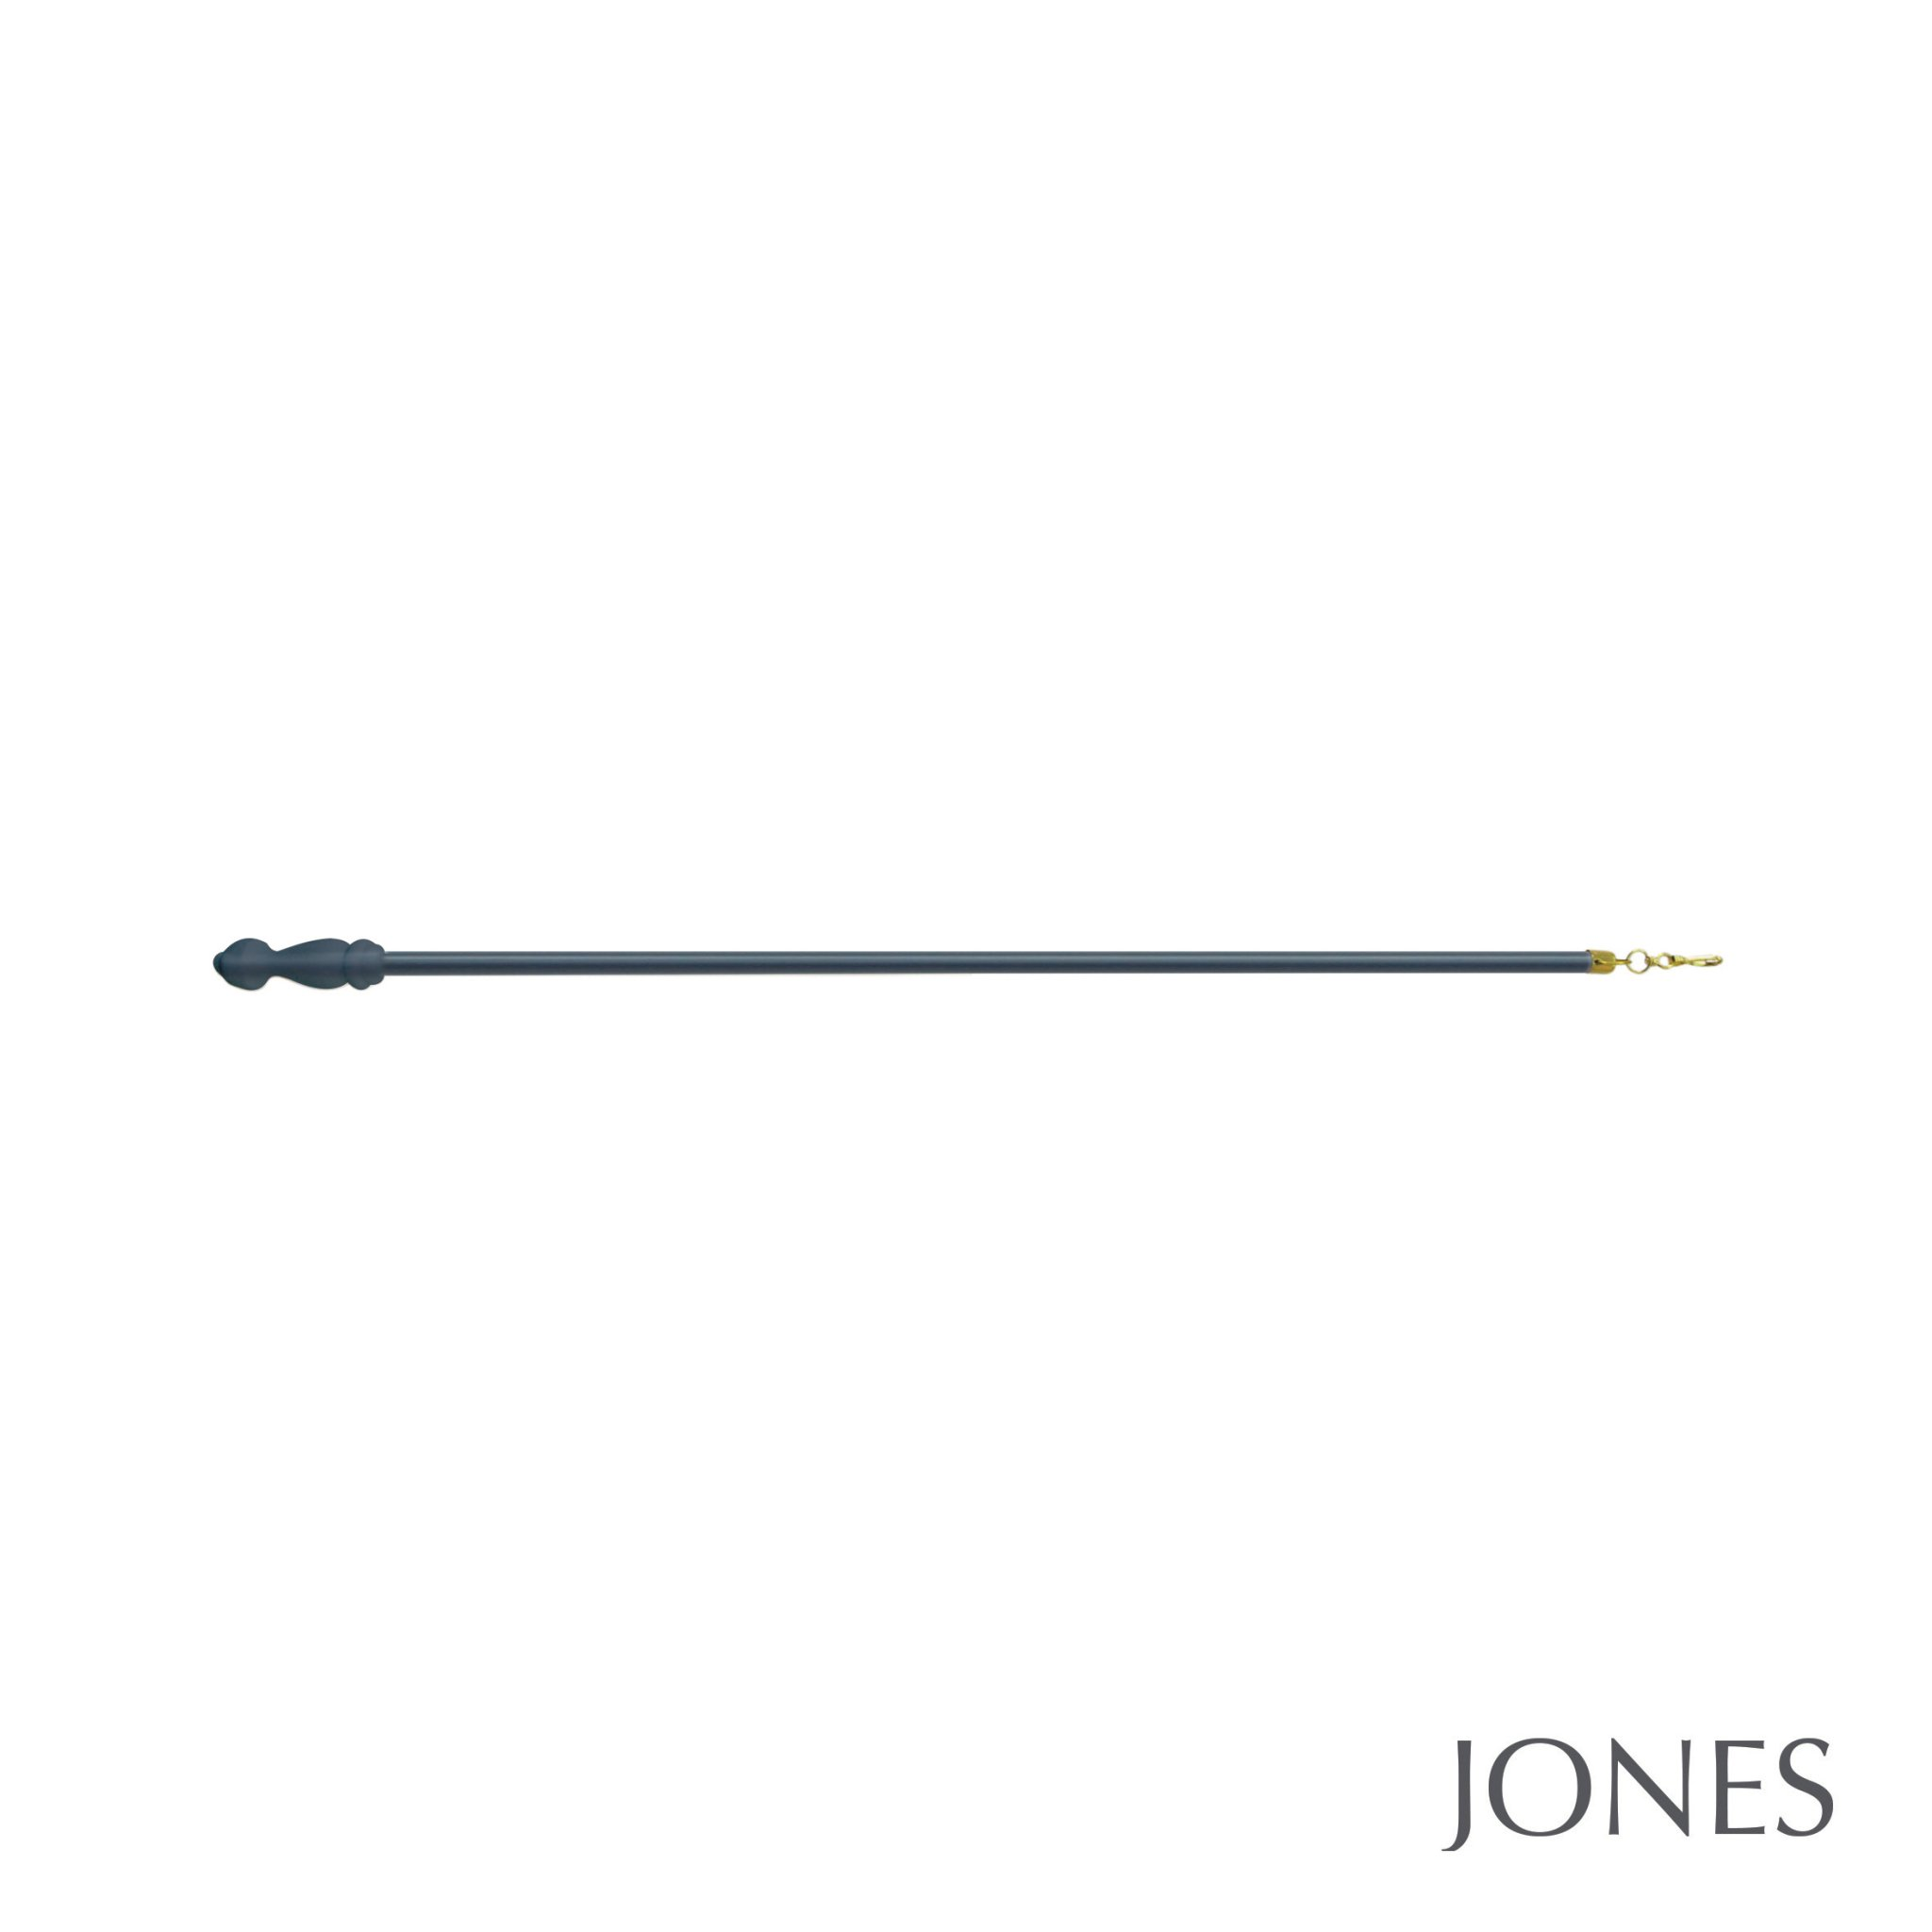 Jones Estate Handcrafted Draw Rods